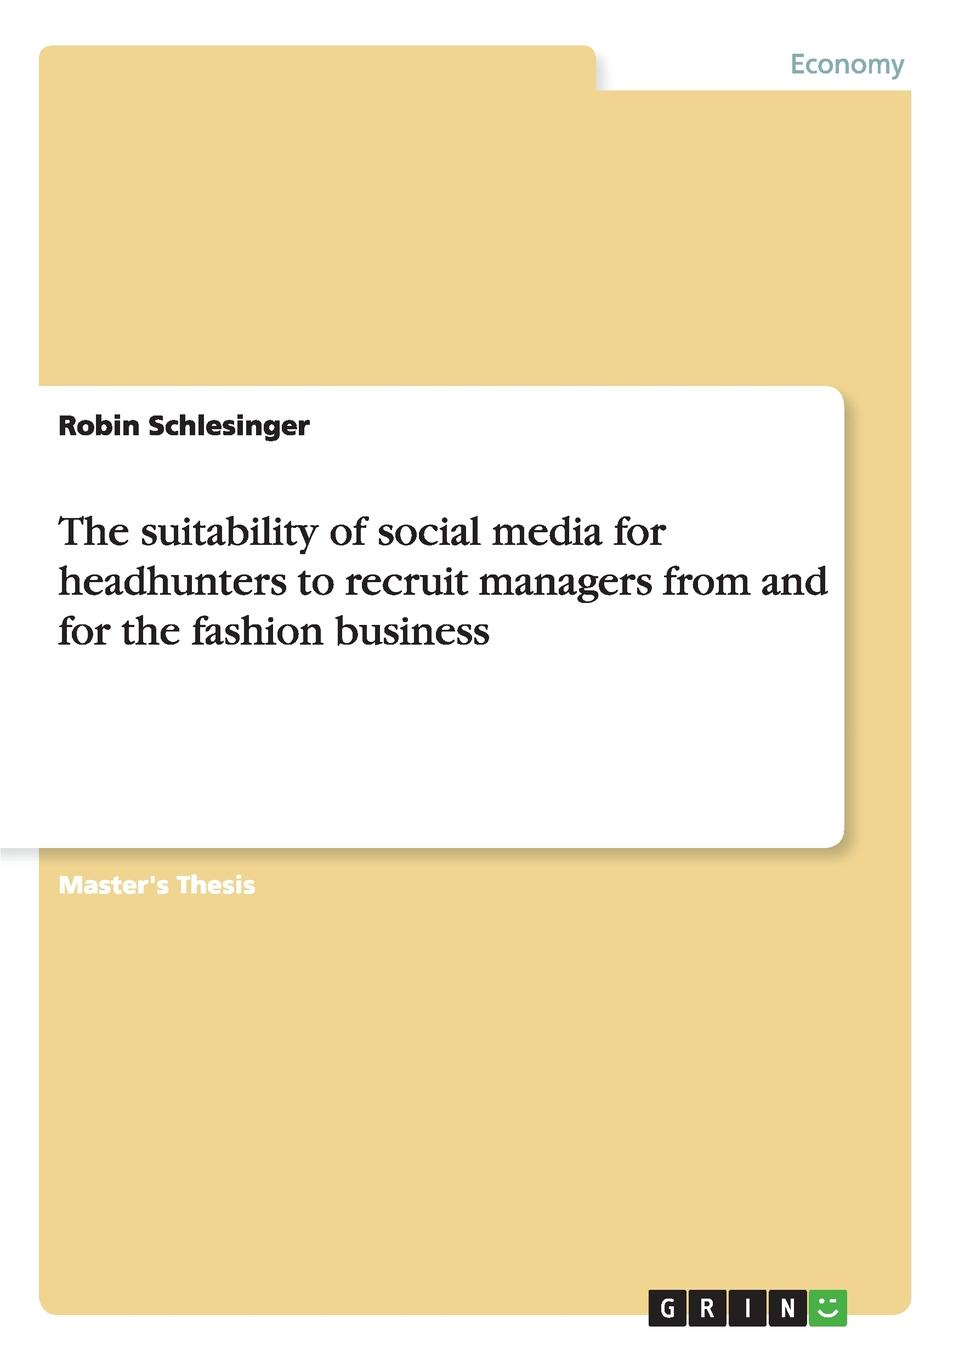 цены на Robin Schlesinger The suitability of social media for headhunters to recruit managers from and for the fashion business  в интернет-магазинах